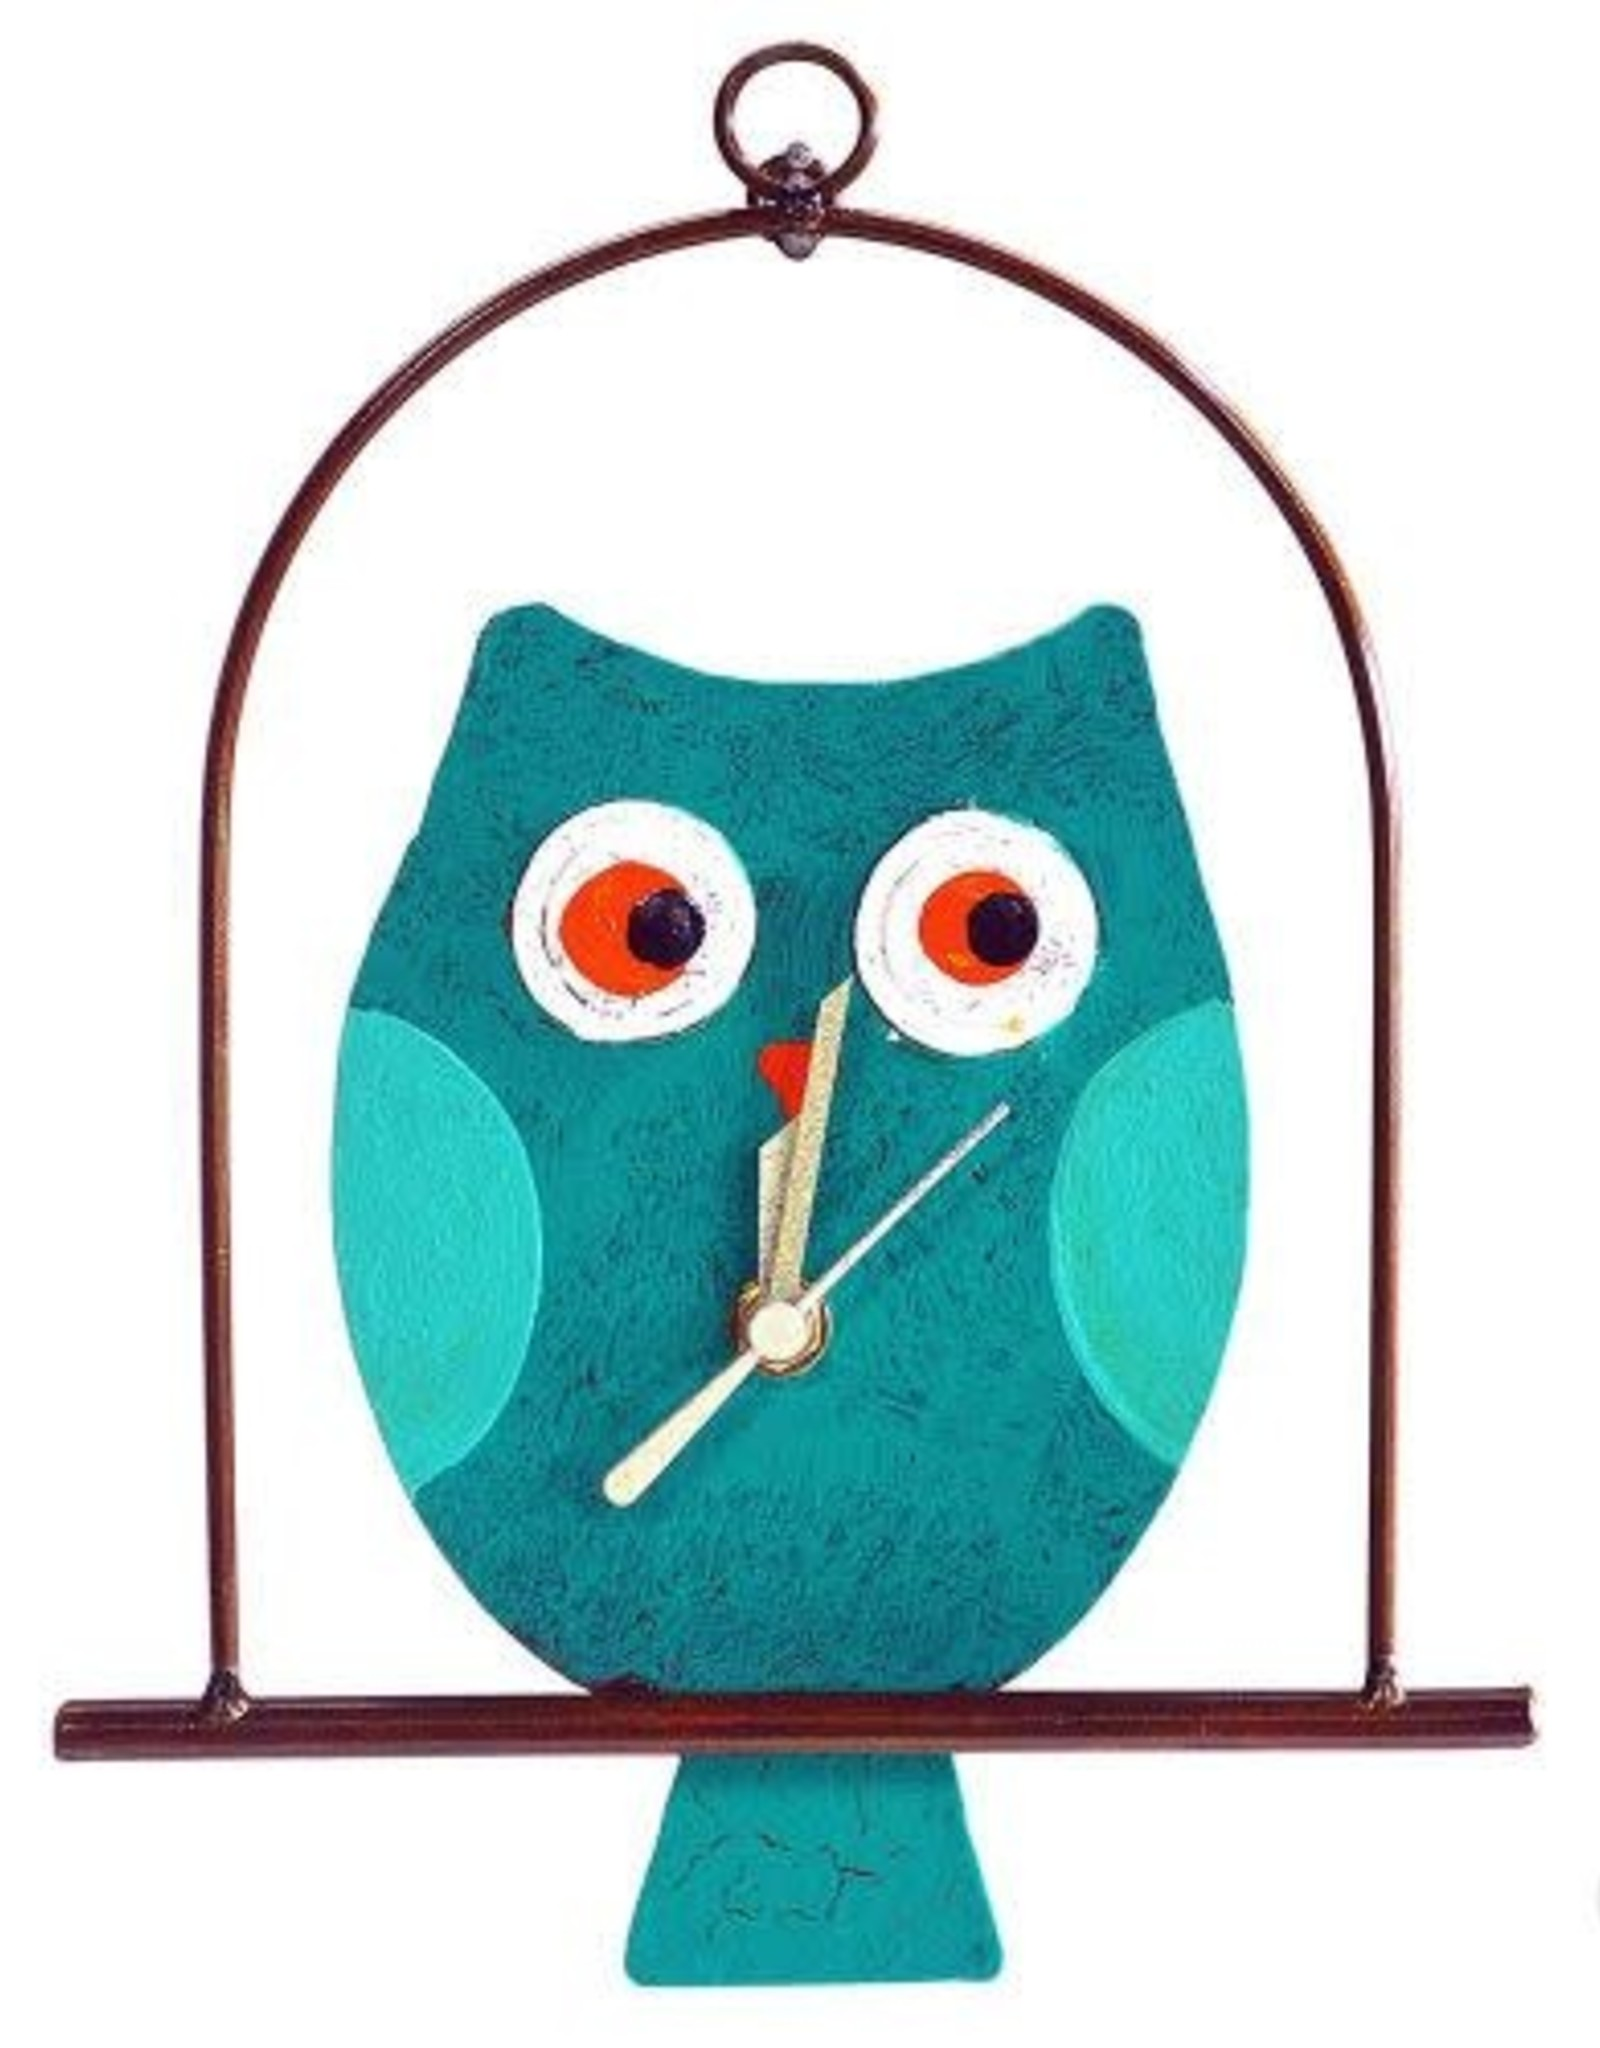 Colombia, Silly Clocks Teal Owl in a Cage